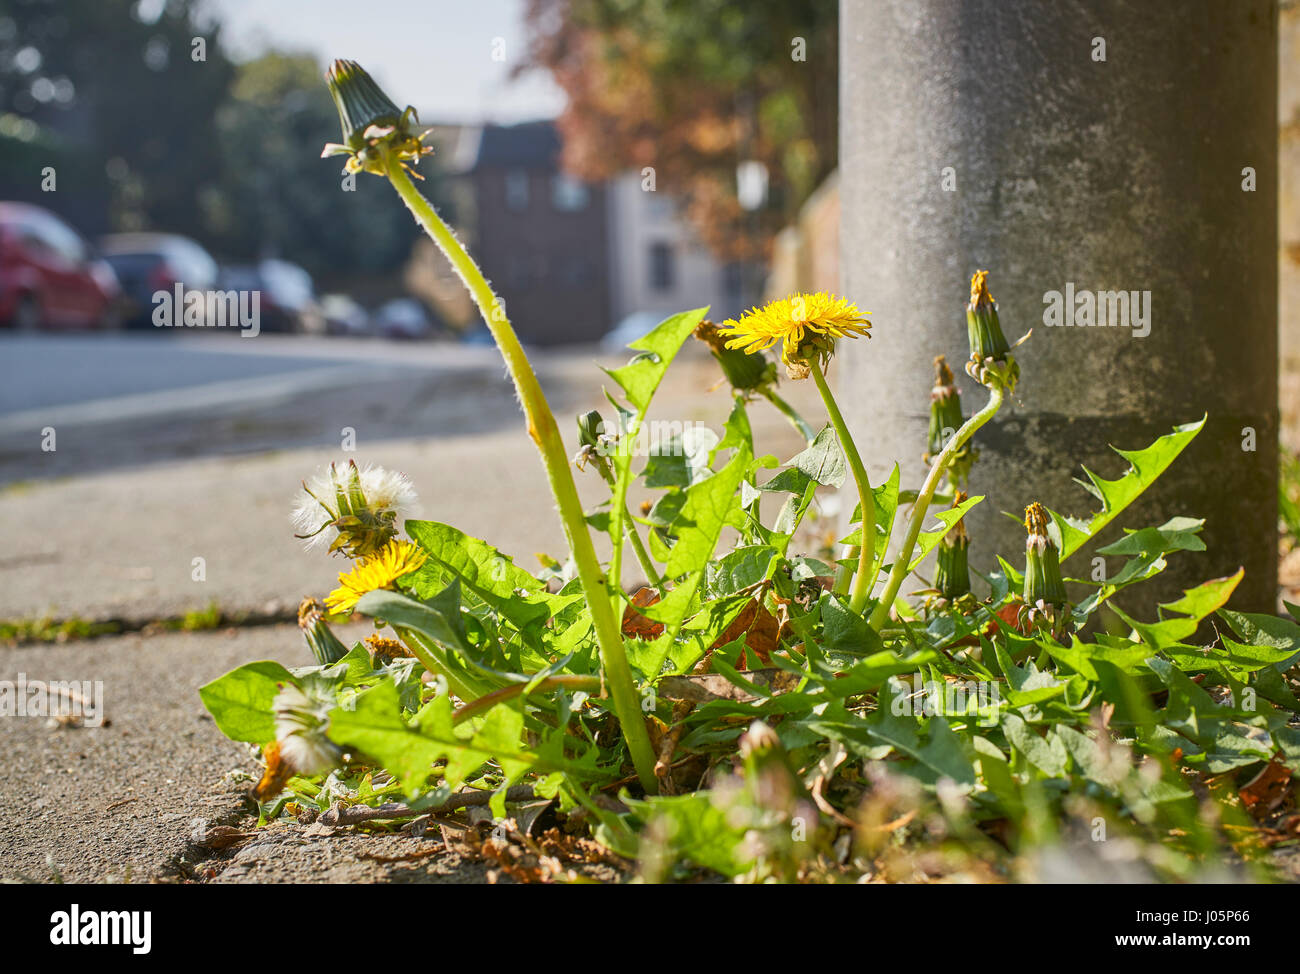 Weeds growing out of the pavement on an urban roadside - Stock Image